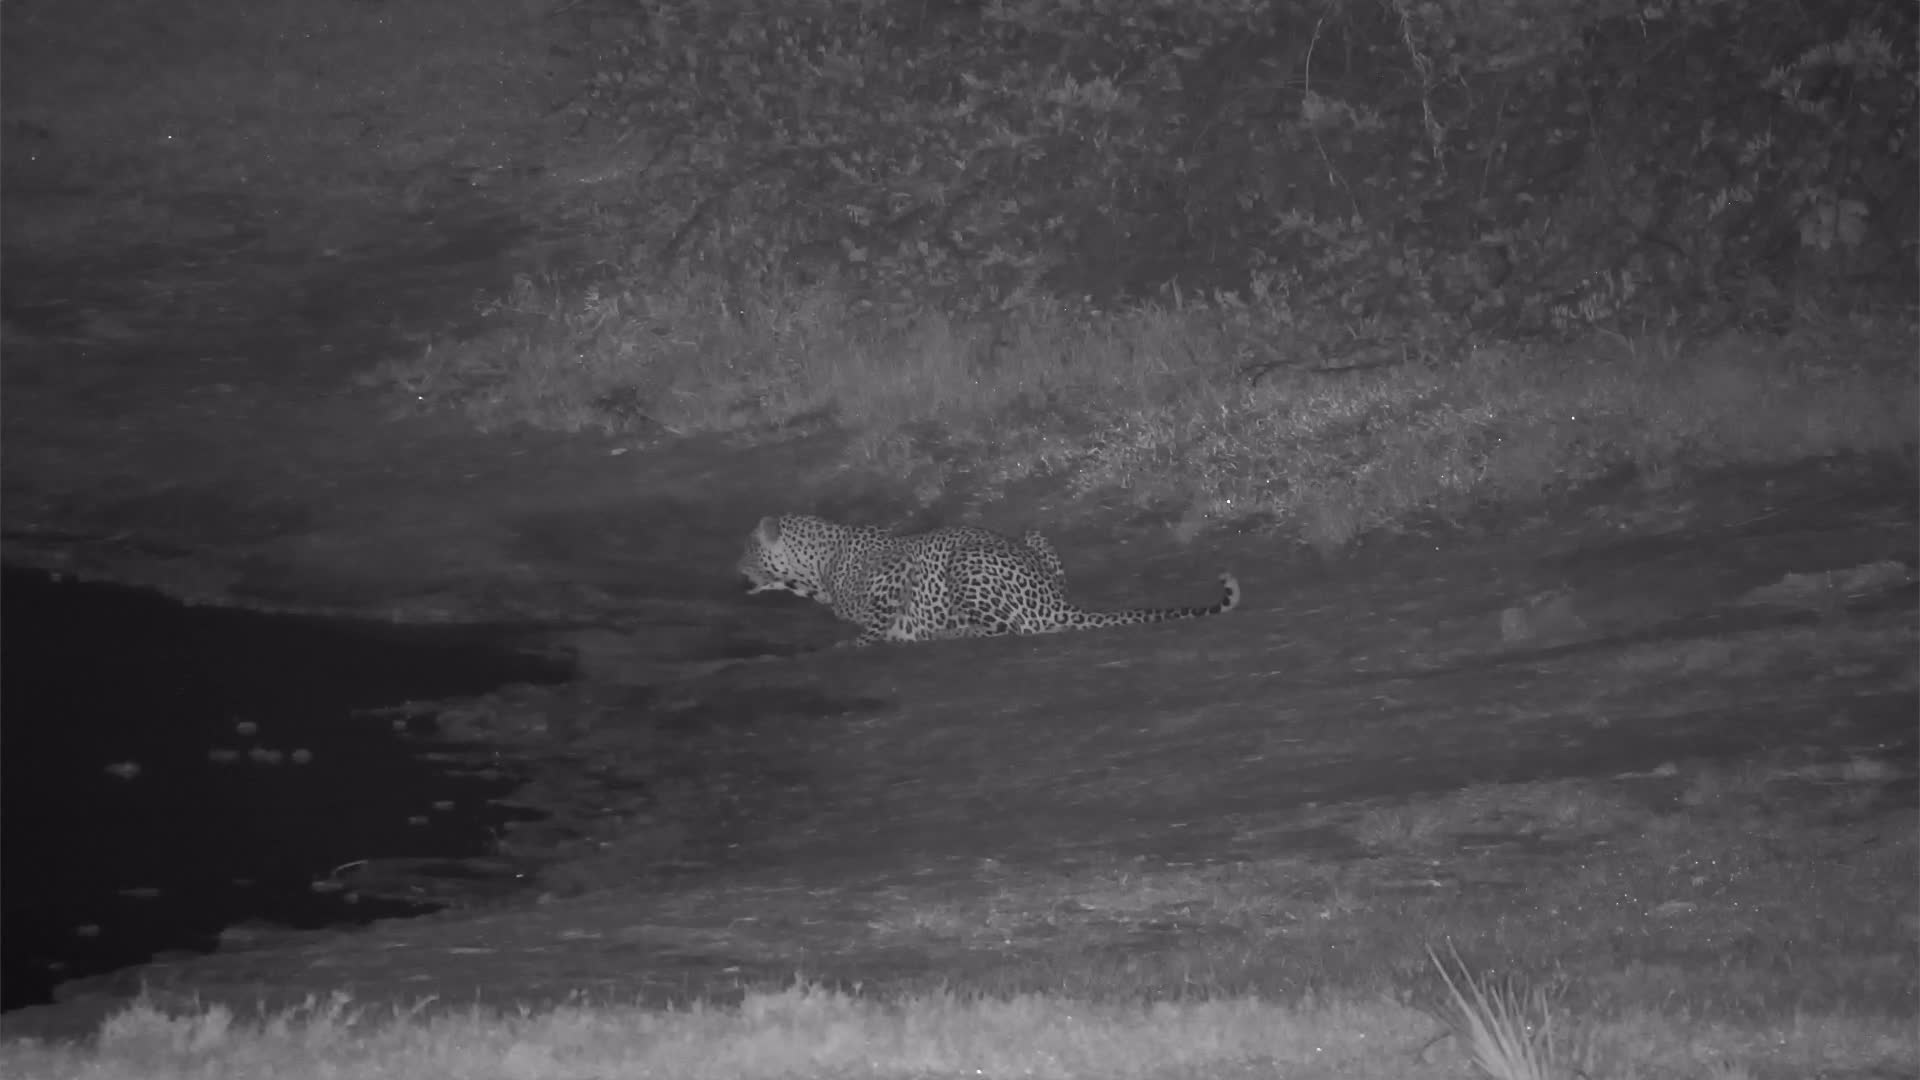 VIDEO: Leopard had a drink at the waterhole and wanders off into the bush